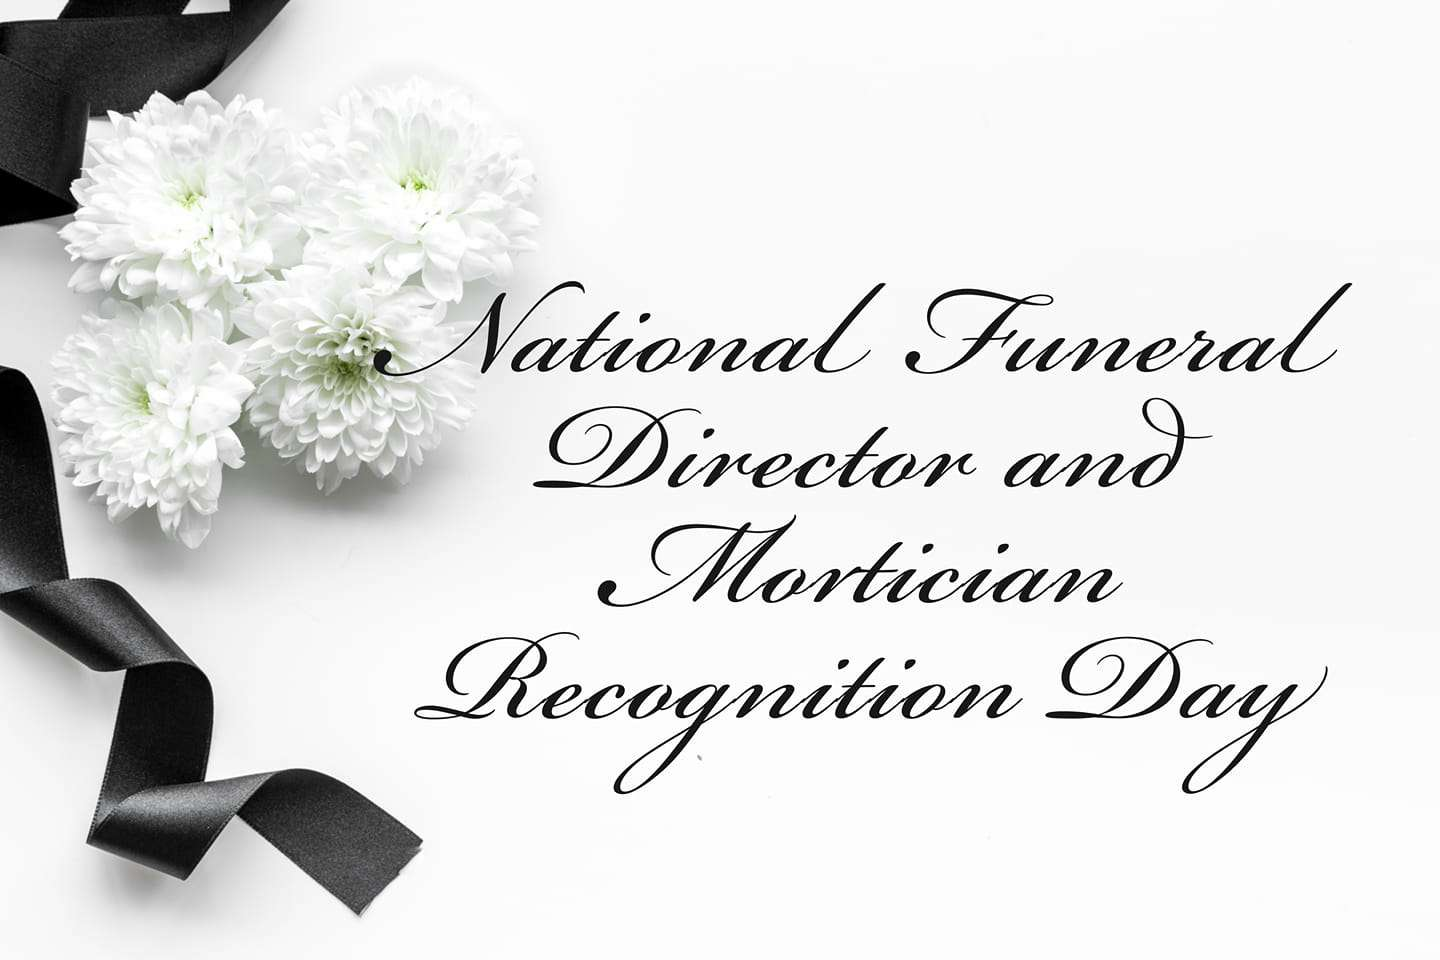 National Funeral Director and Mortician Recognition Day Wishes Images download